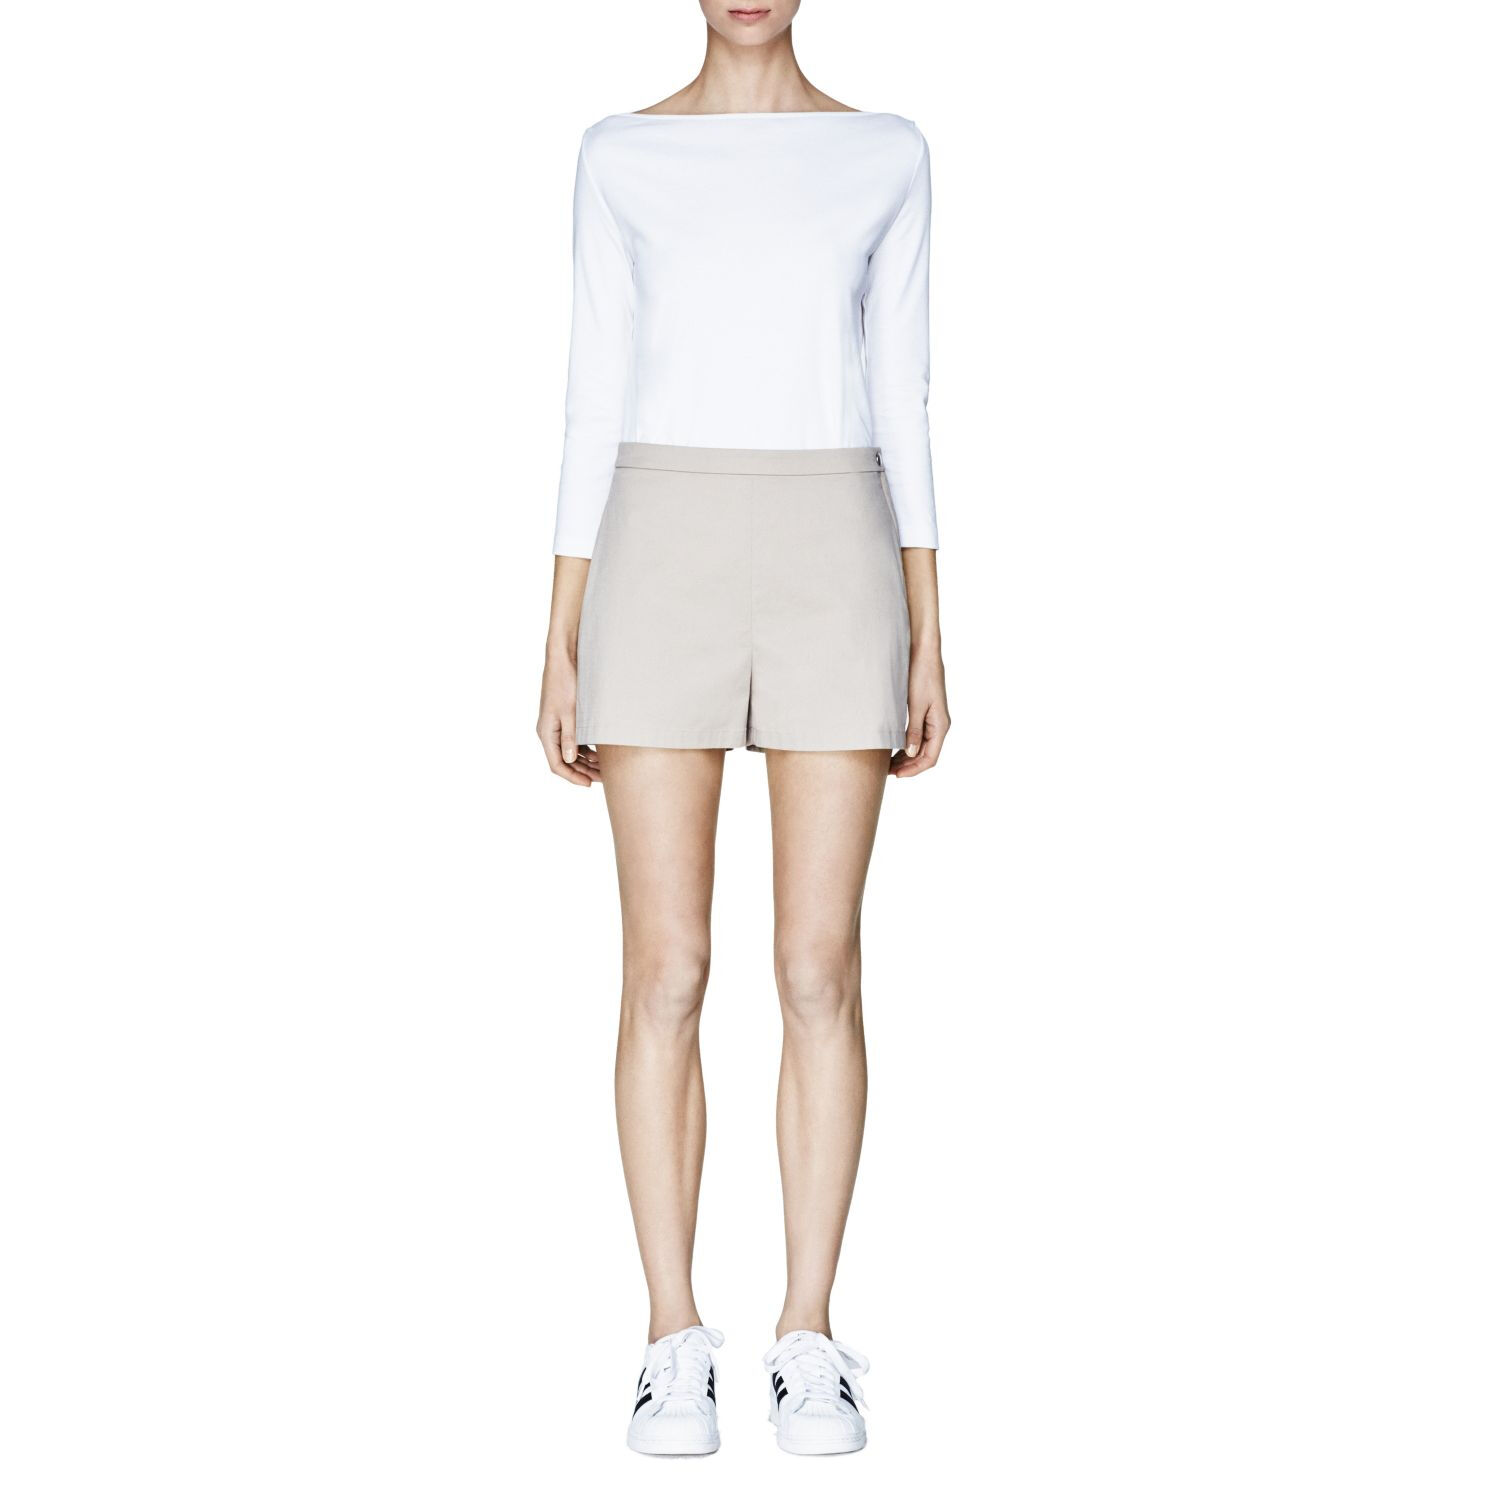 NWT- Theory 'Micro' High Waisted Summer Twill Shorts, Cement Beige - Size 2